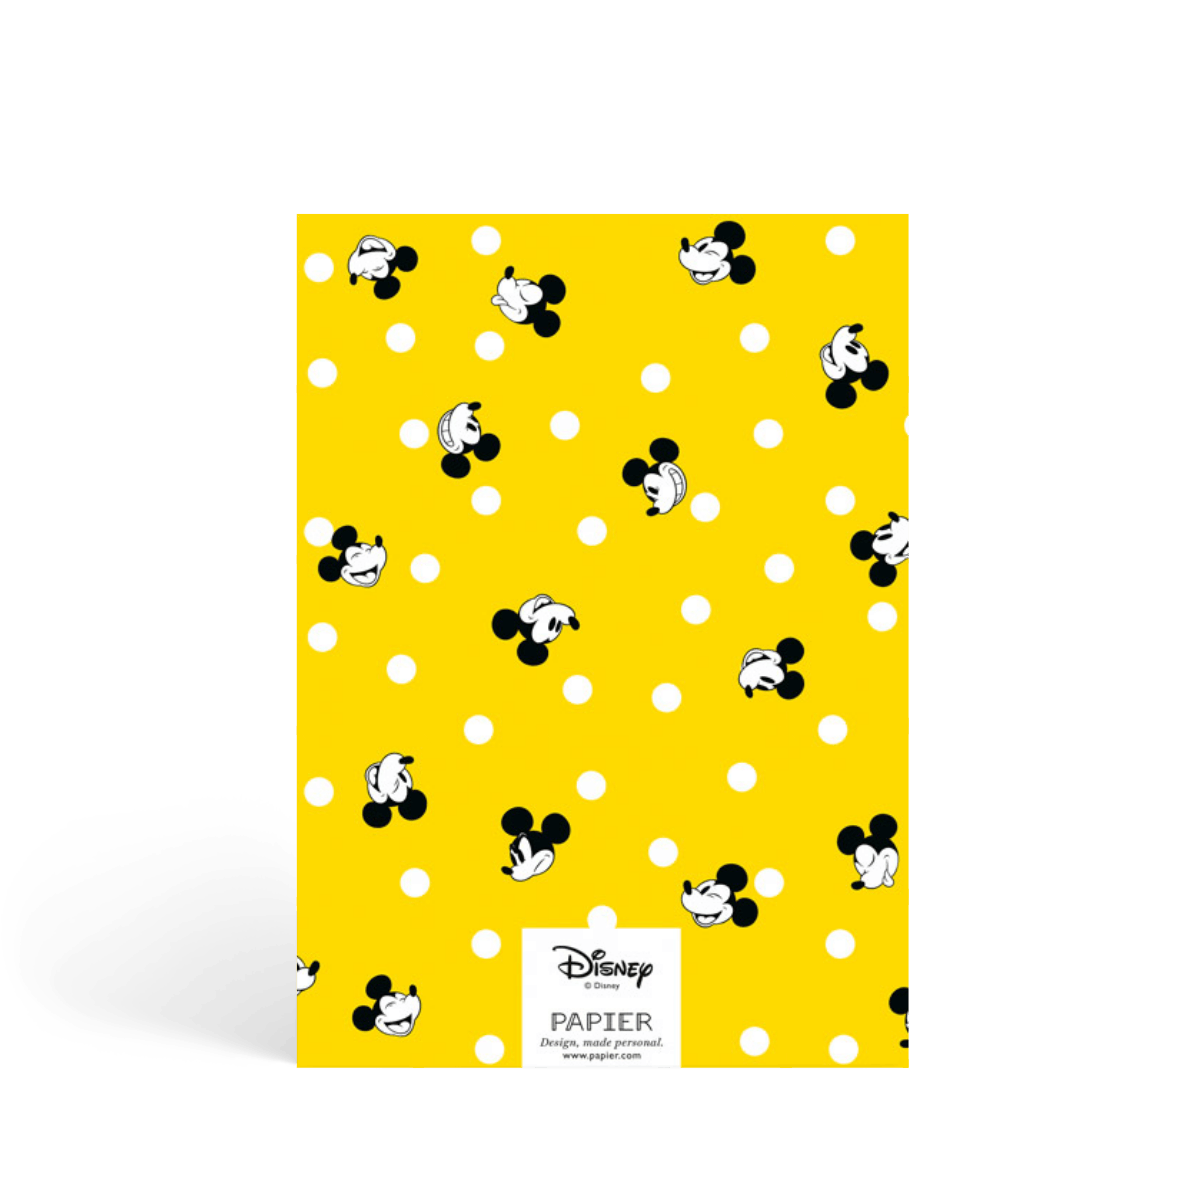 Https%3a%2f%2fwww.papier.com%2fproduct image%2f72284%2f5%2fmickey polka 17035 back 1555527217.png?ixlib=rb 1.1